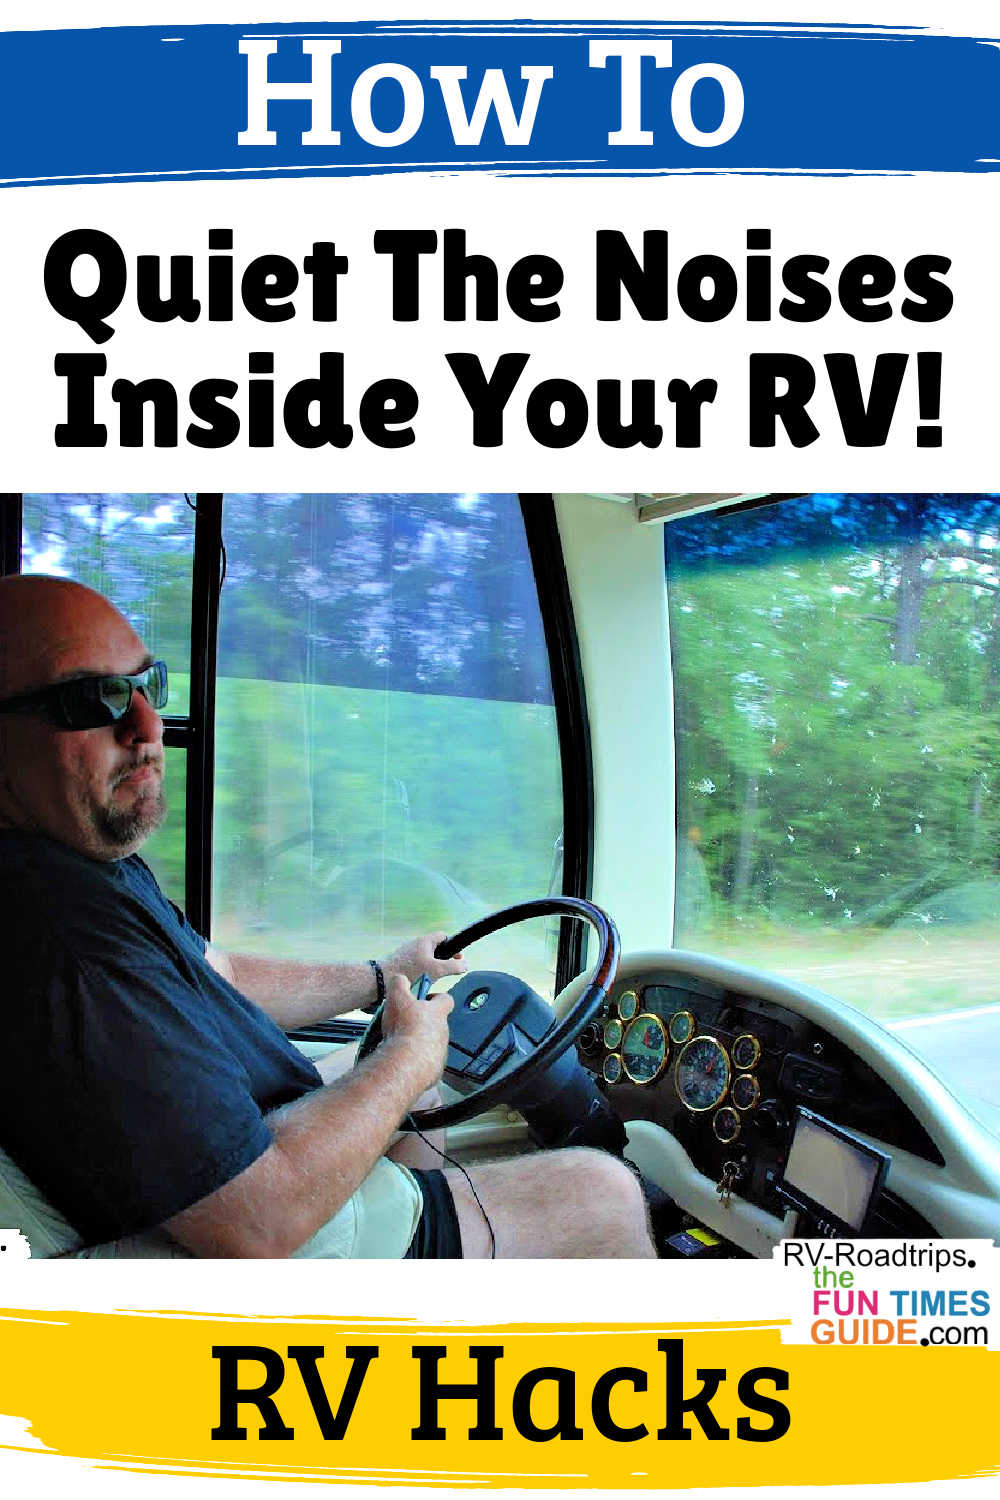 8 RV Hacks To Quiet The Noises Inside Your RV